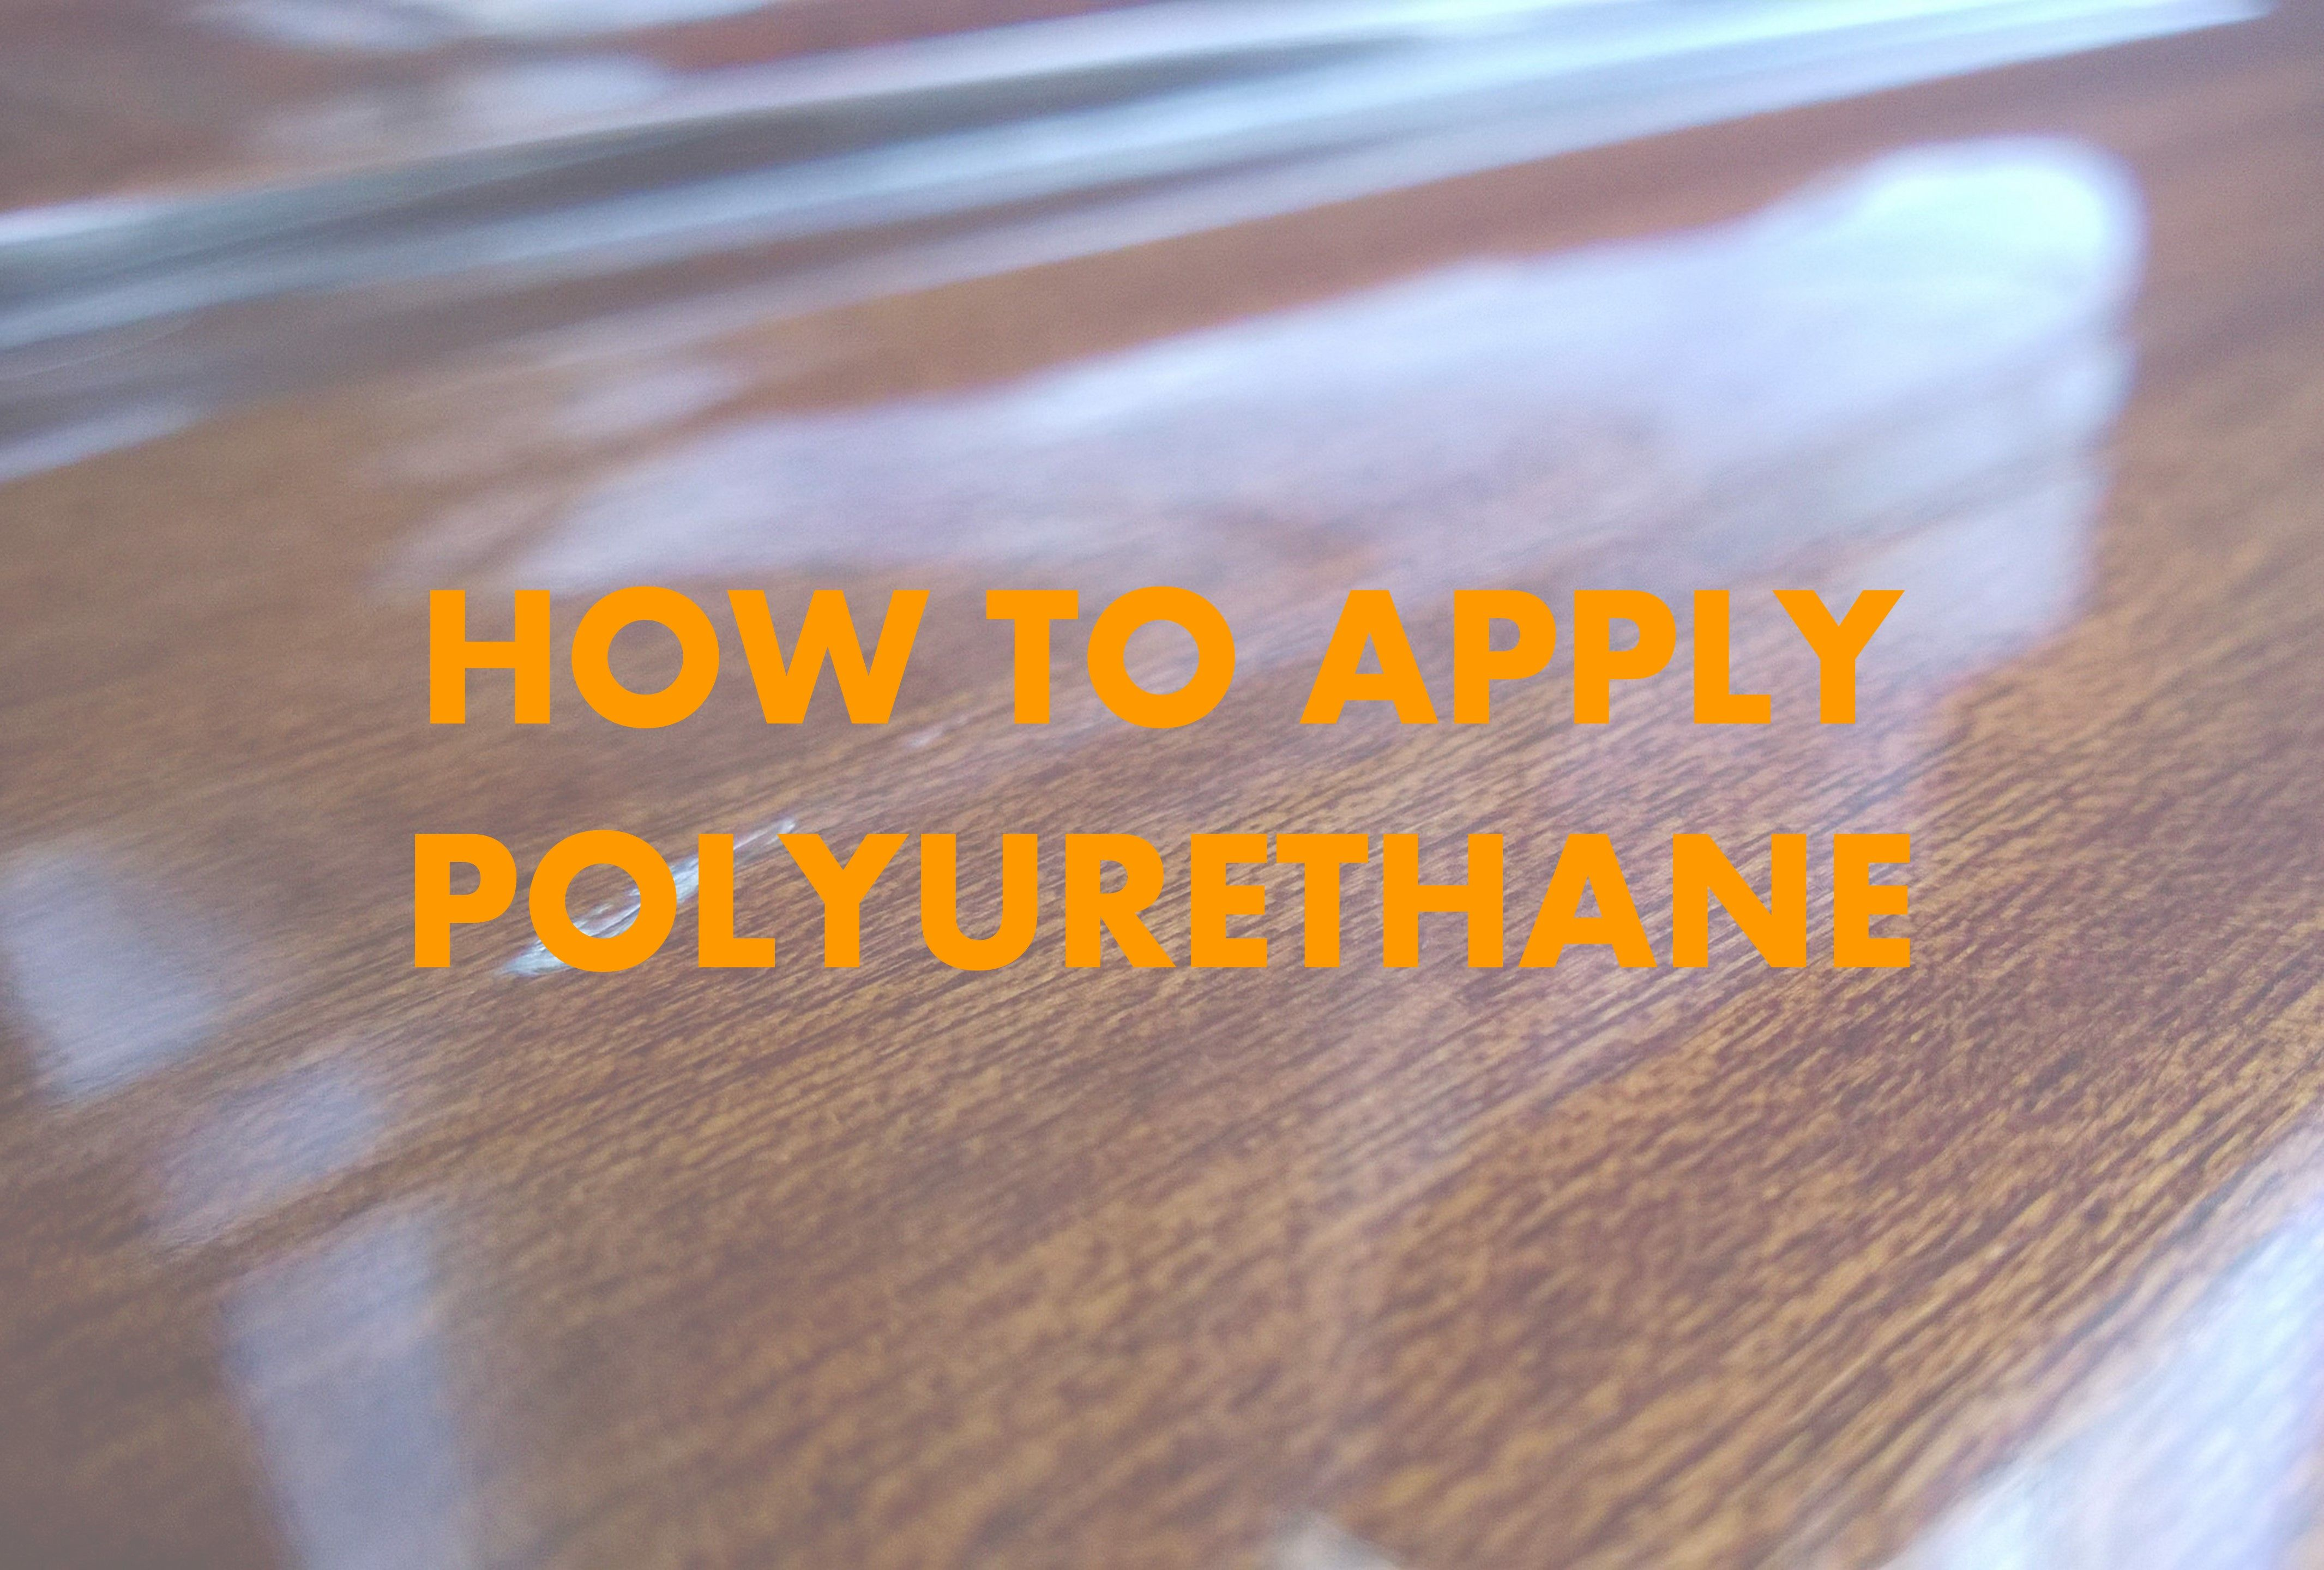 Applying polyurethane isn't exactly like painting. If you've never done it before, here's some handy guidance. Even if you have used it before, it's a great refresher.